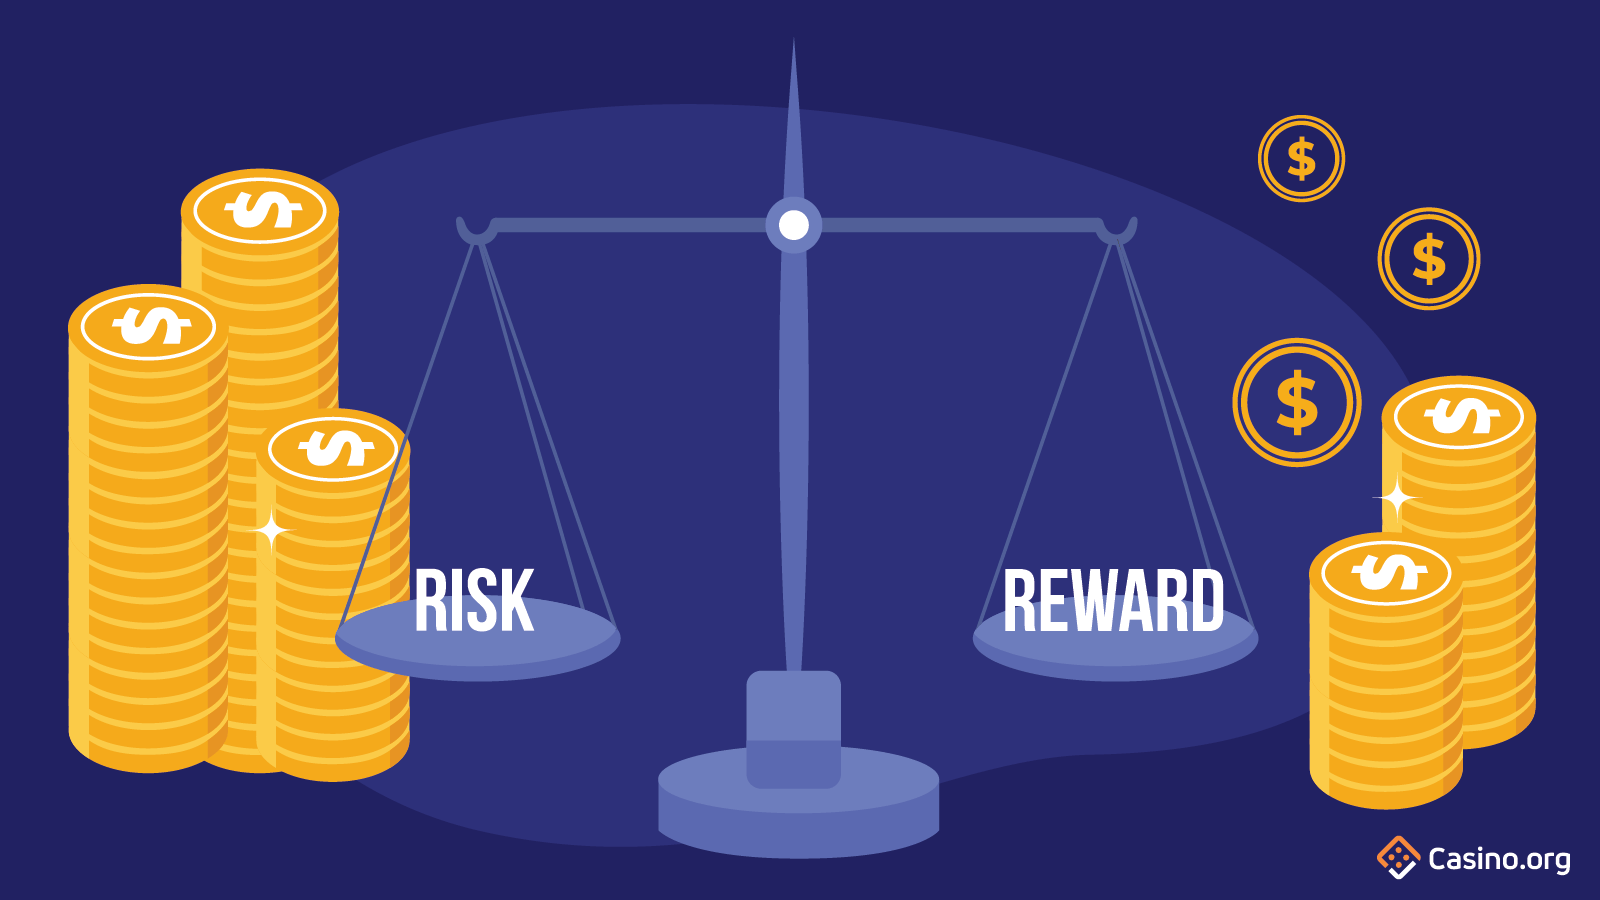 Risk vs Reward Ratio